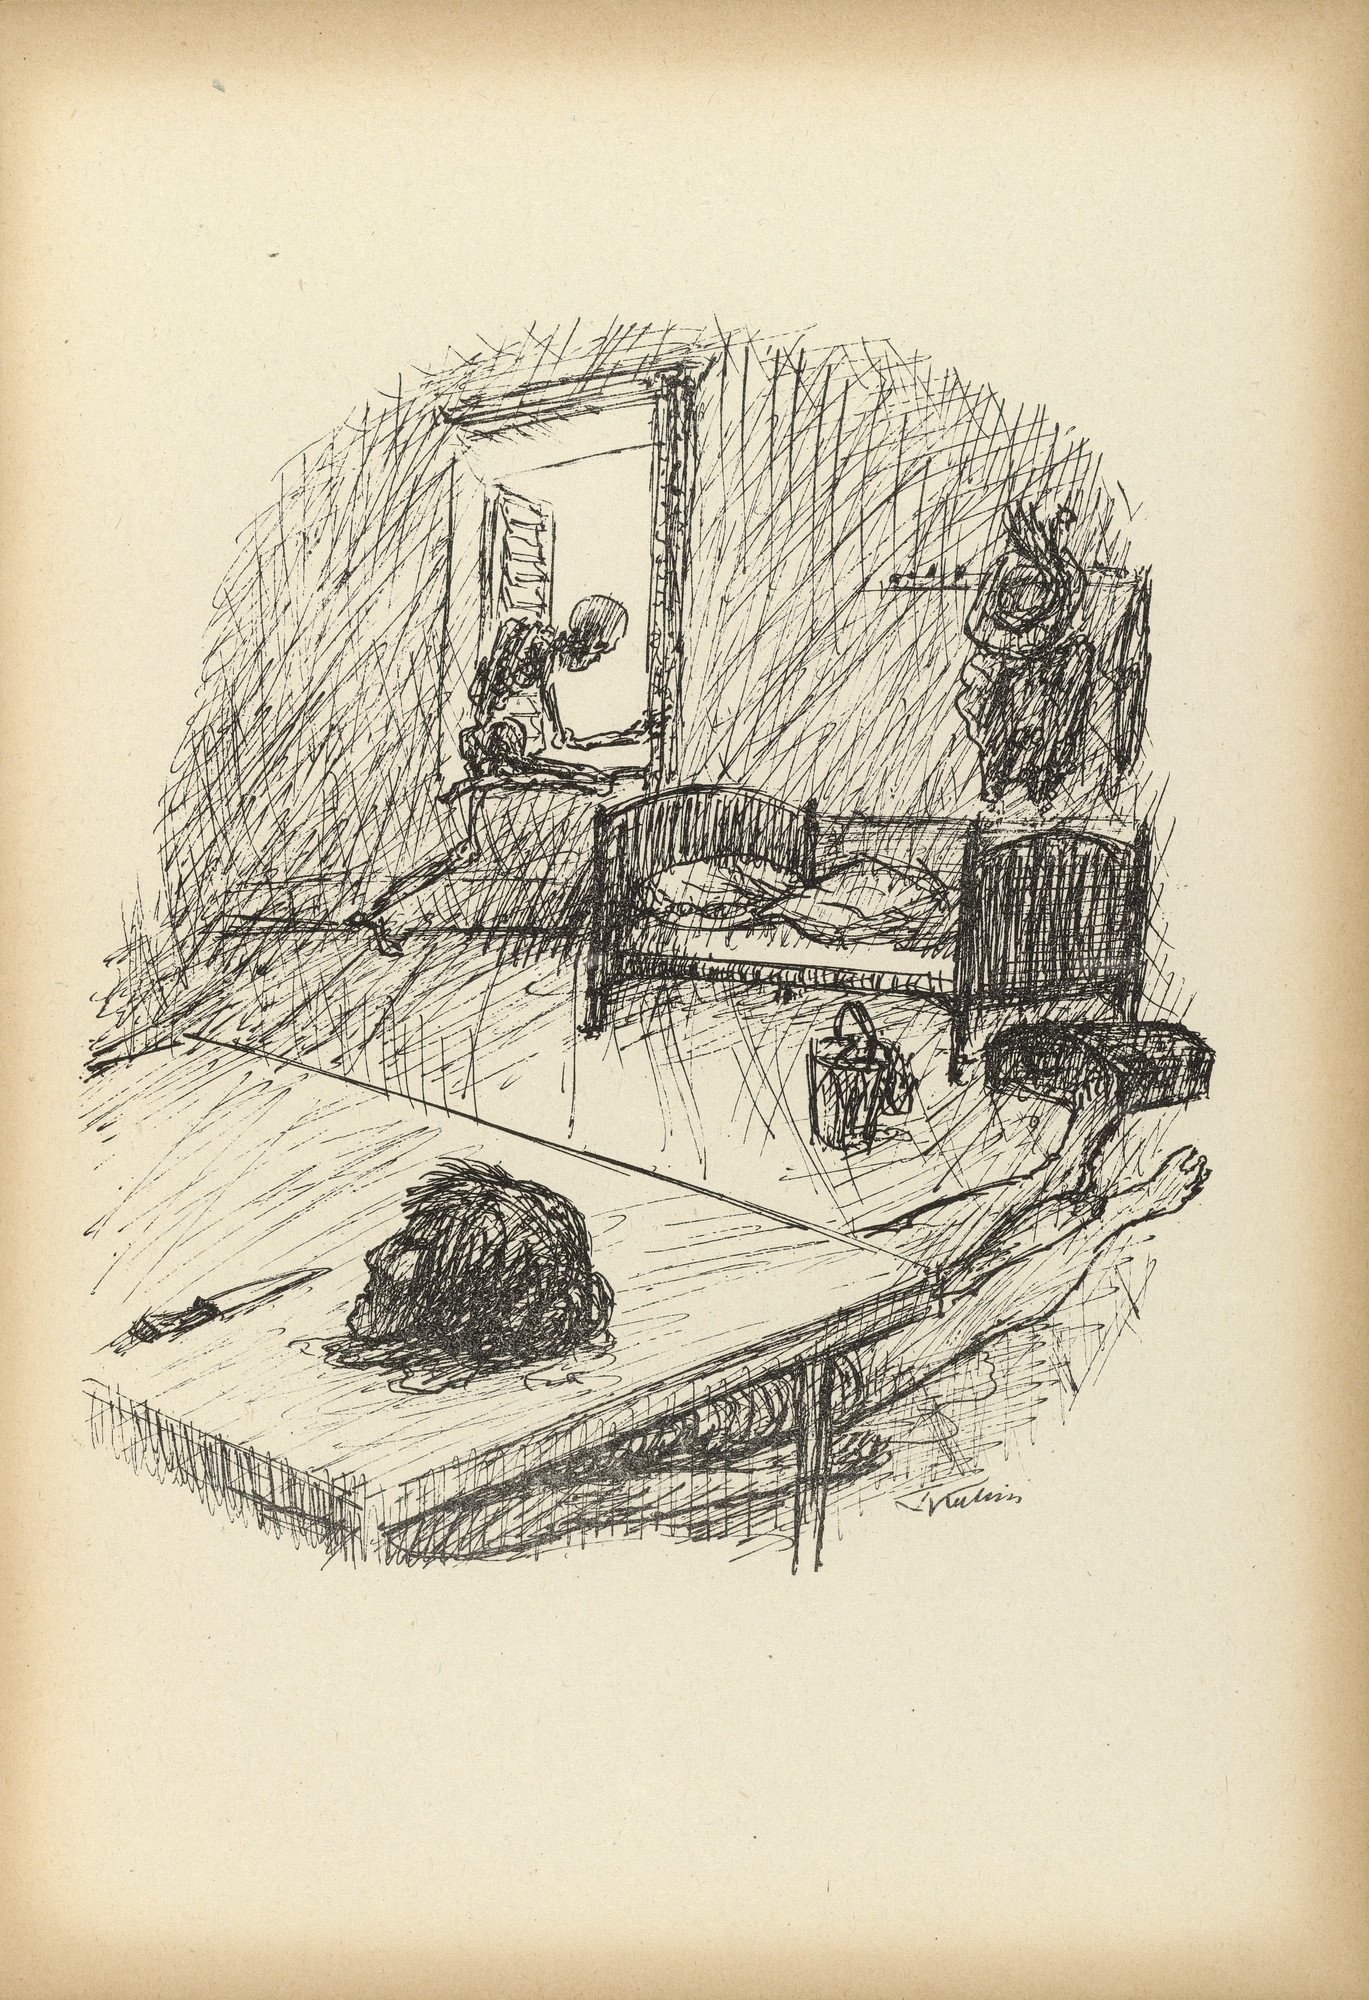 Alfred Kubin. Blue Beard's Room (Blaubarts Zimmer) from Ein neuer Totentanz (A New Dance of Death). 1947 (reproduced drawing executed 1938)